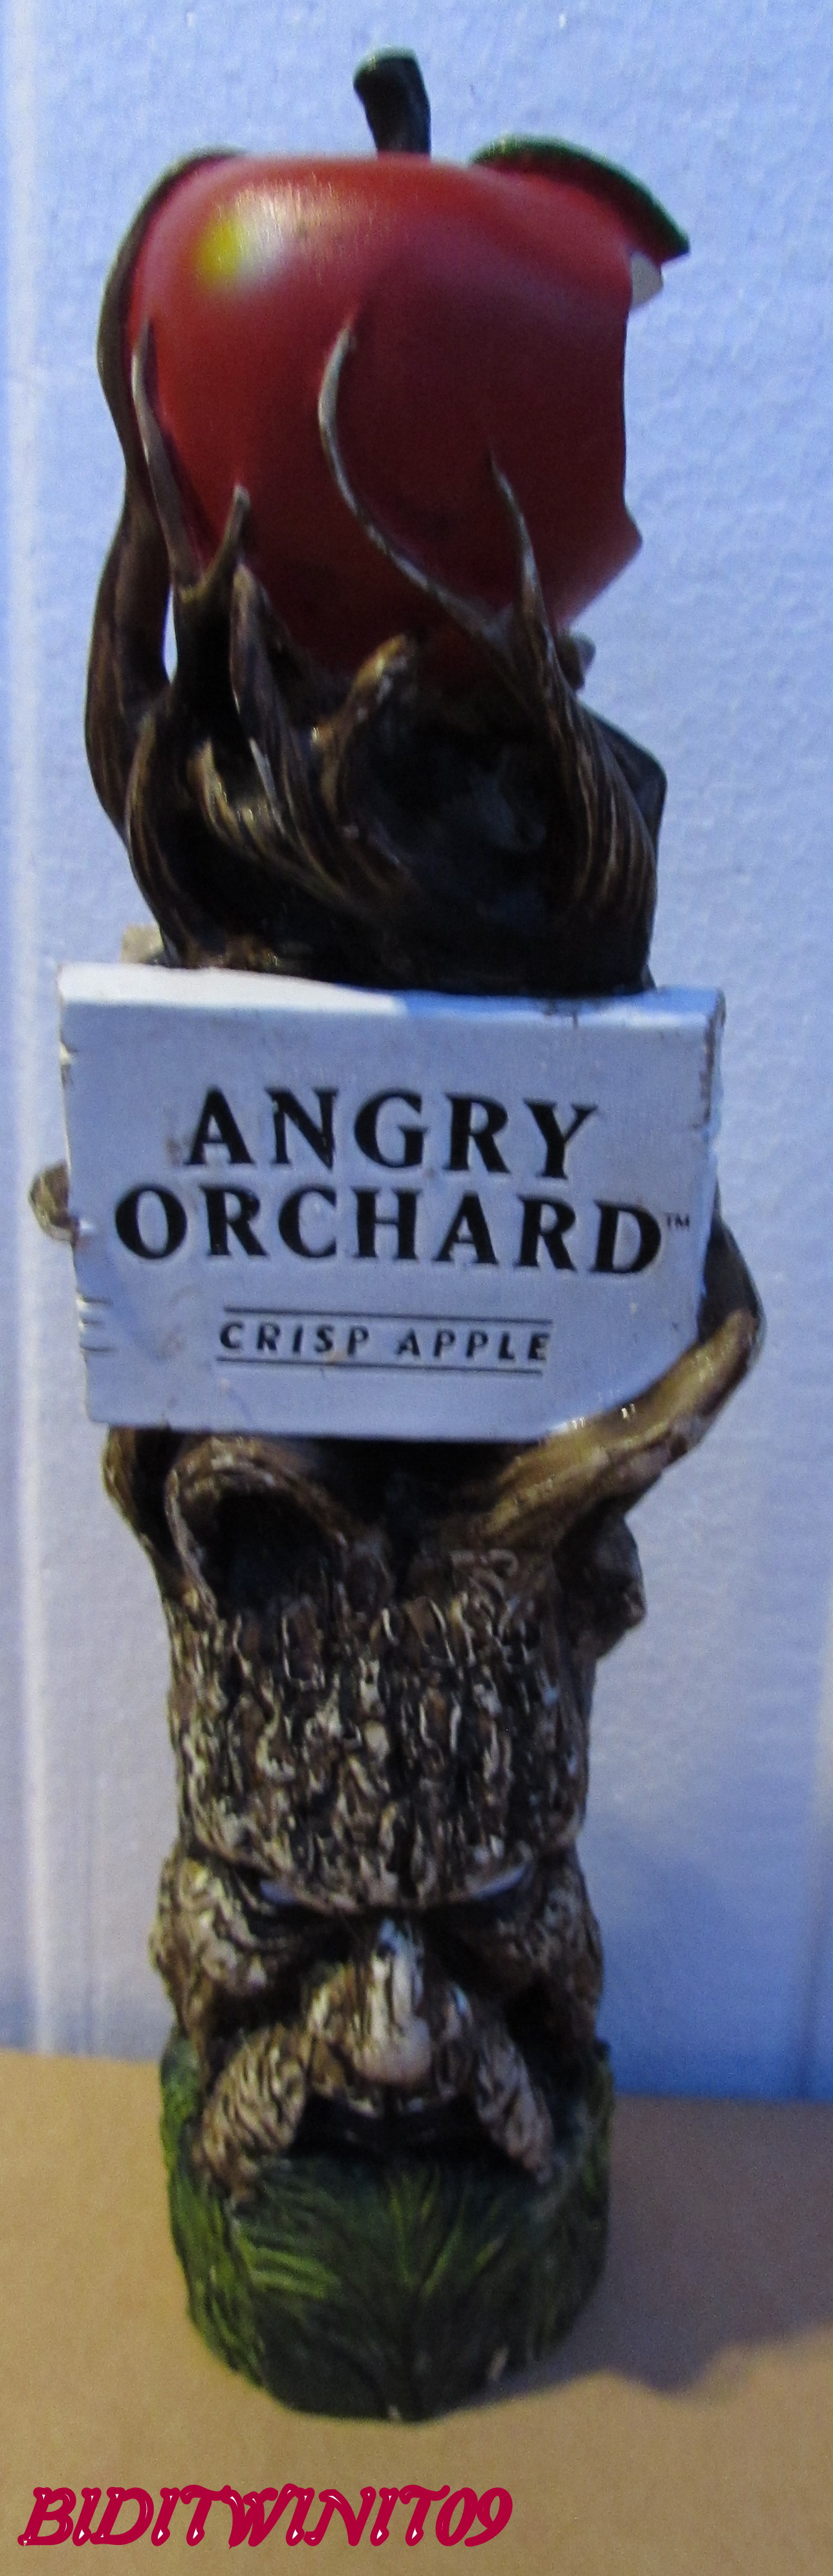 BEER TAP HANDLE ANGRY ORCHARD E+